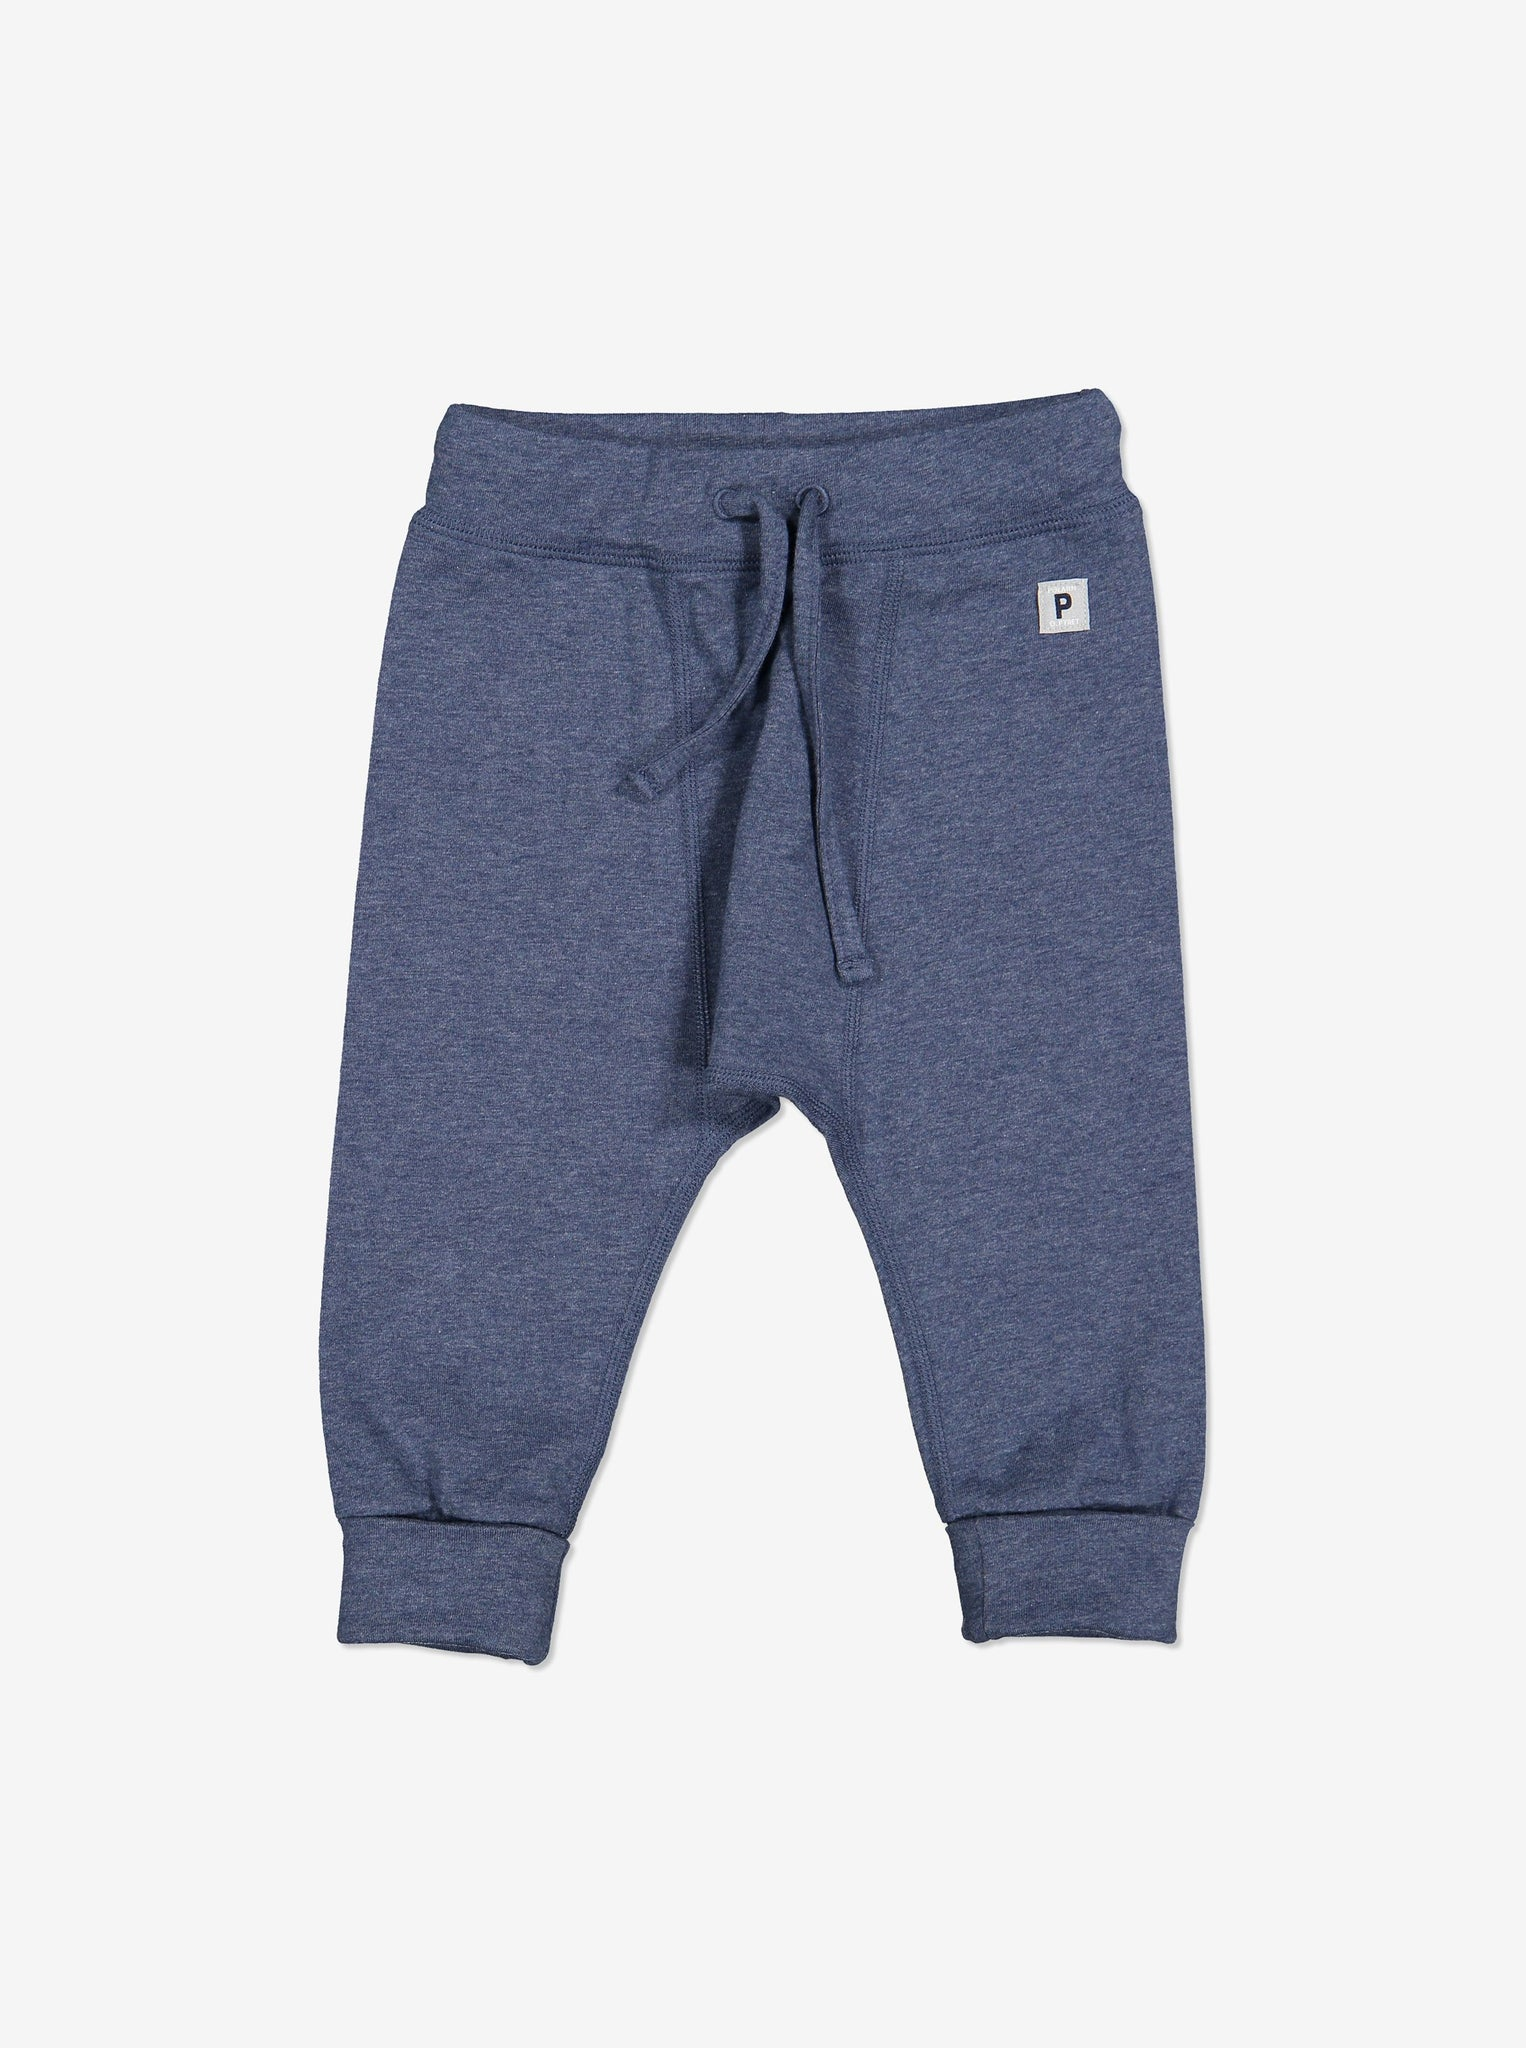 Soft Baby Trousers-Unisex-0-1y-Blue